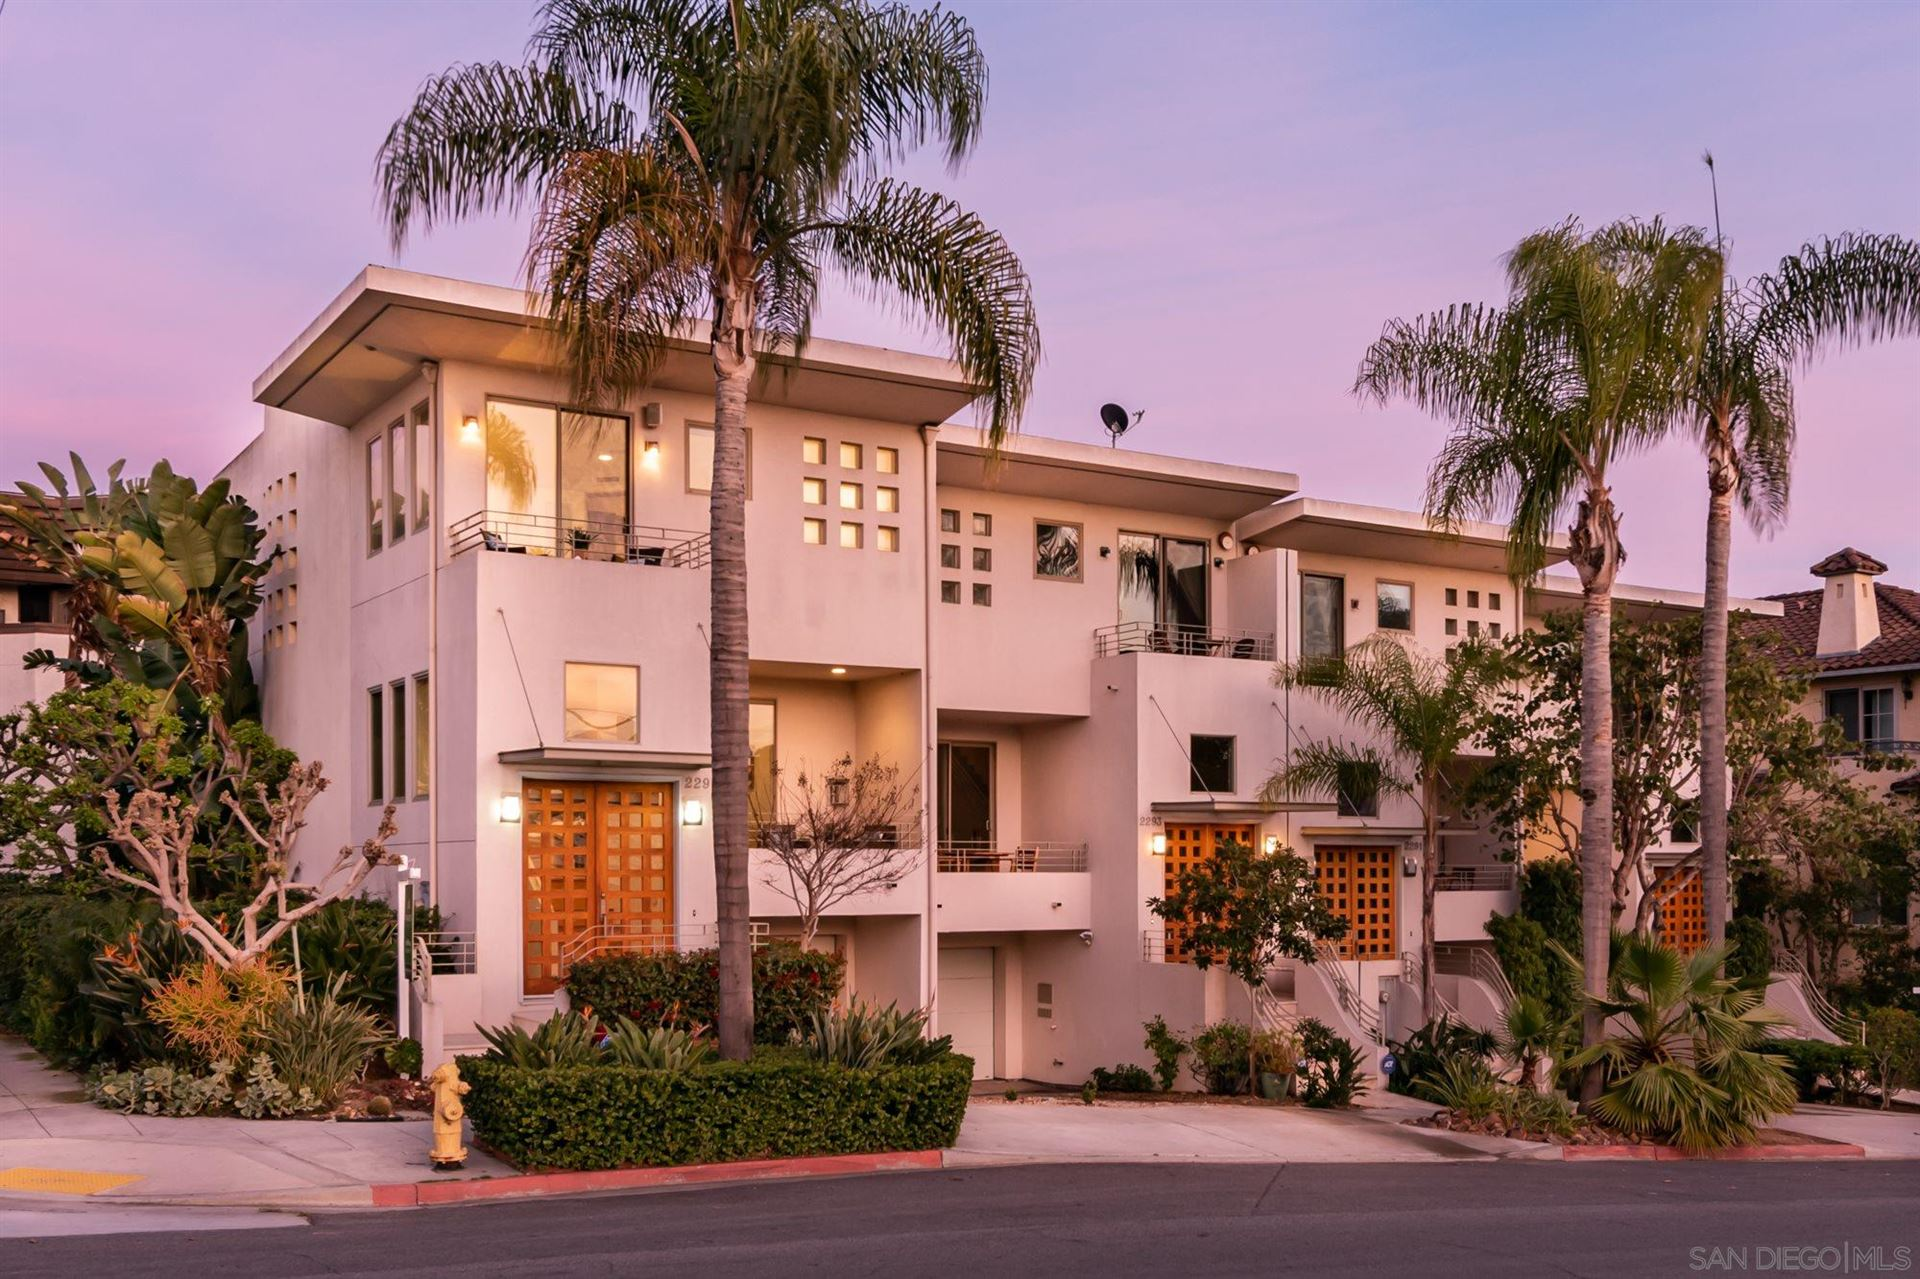 Photo for 2295 3rd, San Diego, CA 92101 (MLS # 210004038)